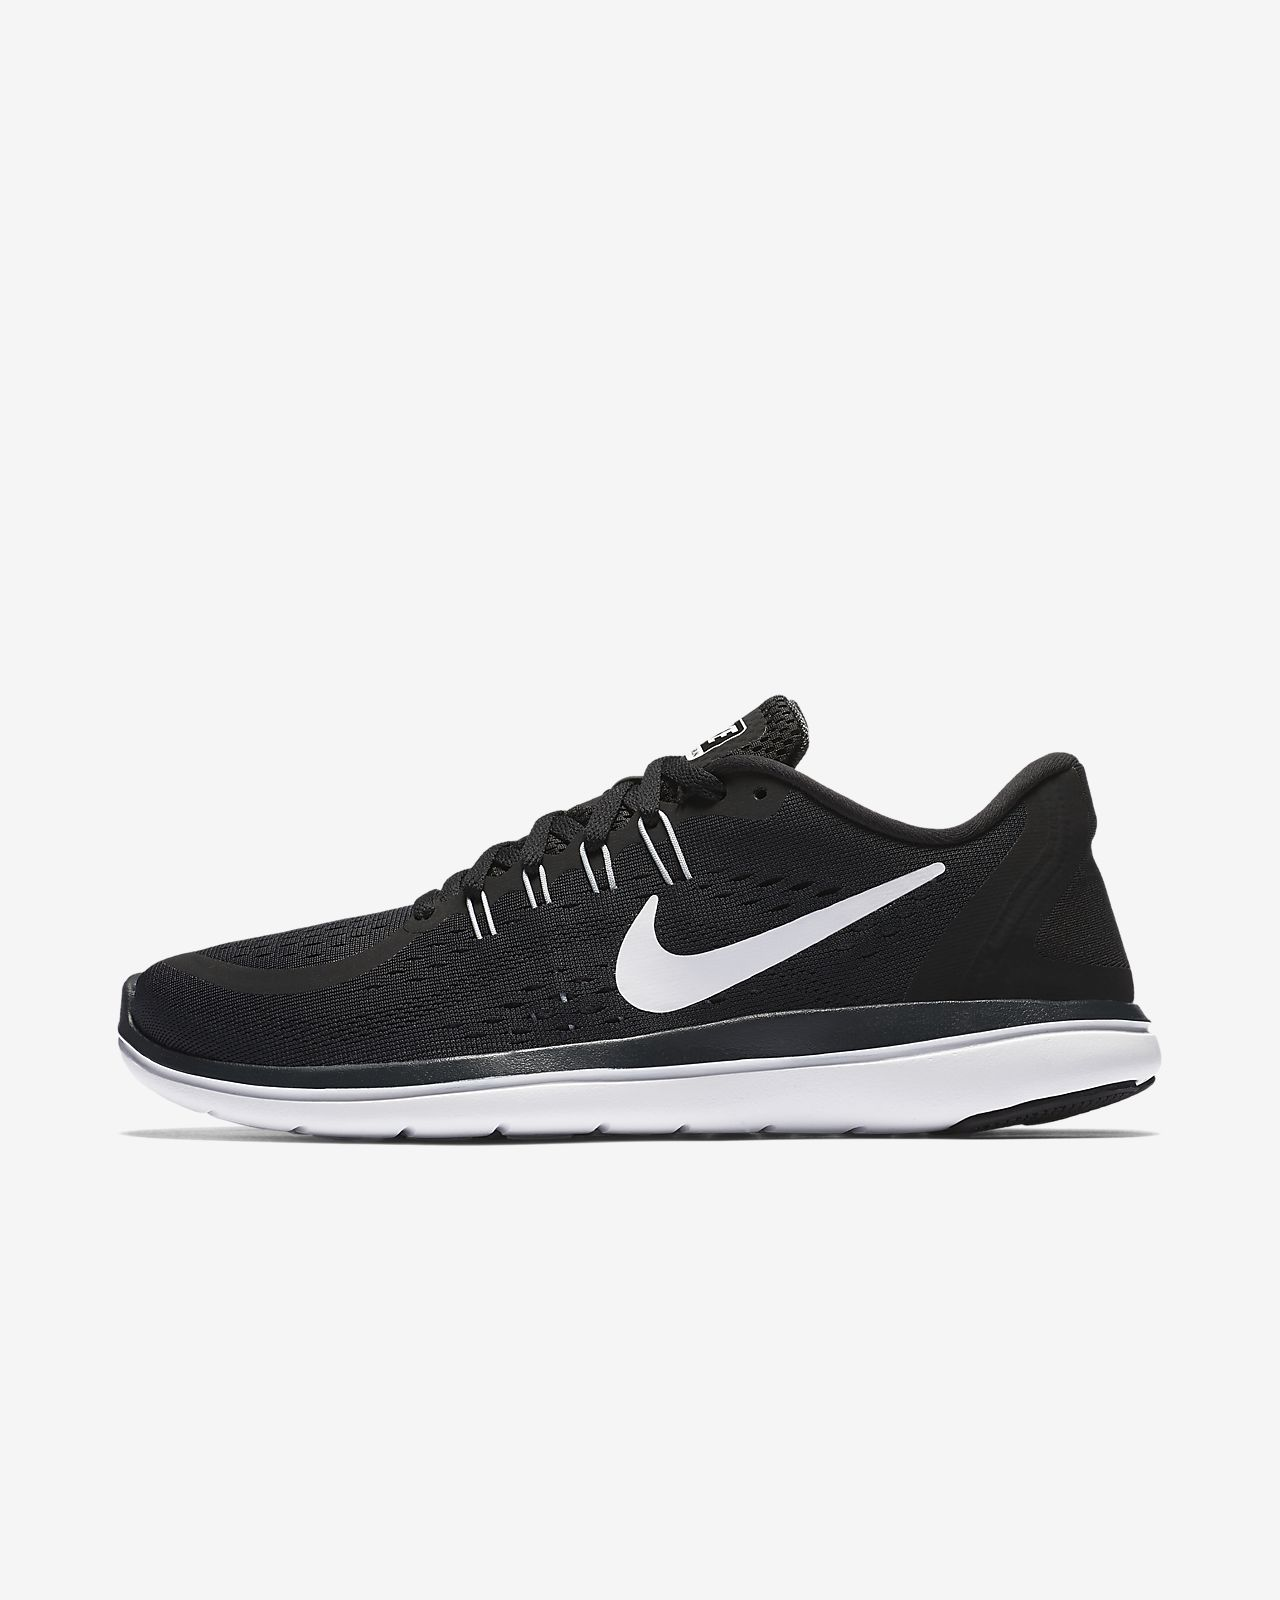 3dc9f6ea5689 nike flex run shoes women